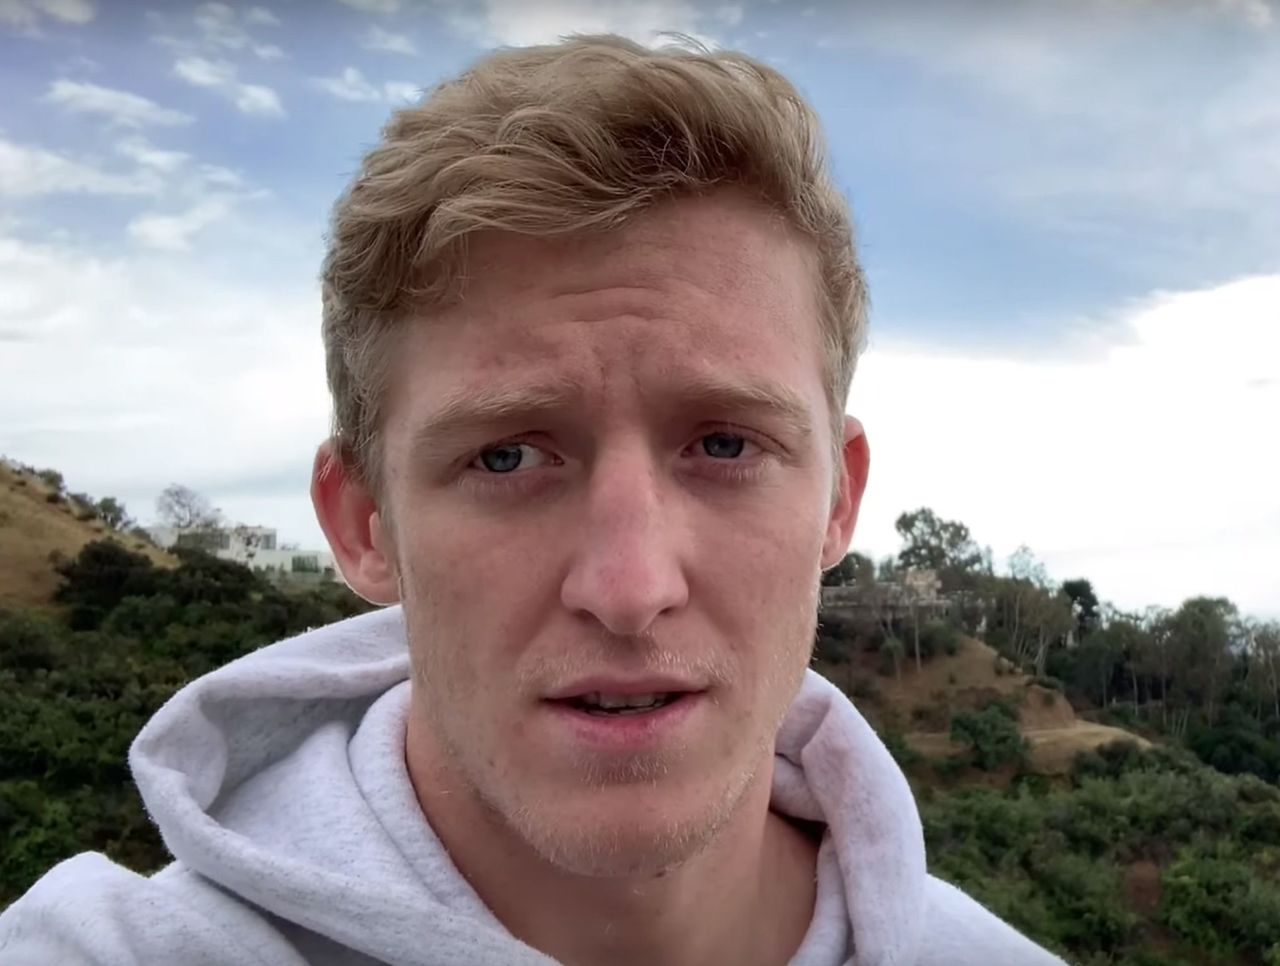 theScore esports Daily (May 23): Tfue breaks silence on FaZe Clan lawsuit, bill to ban loot boxes gains momentum in U.S. while Riot Games forced arbitration situation develops